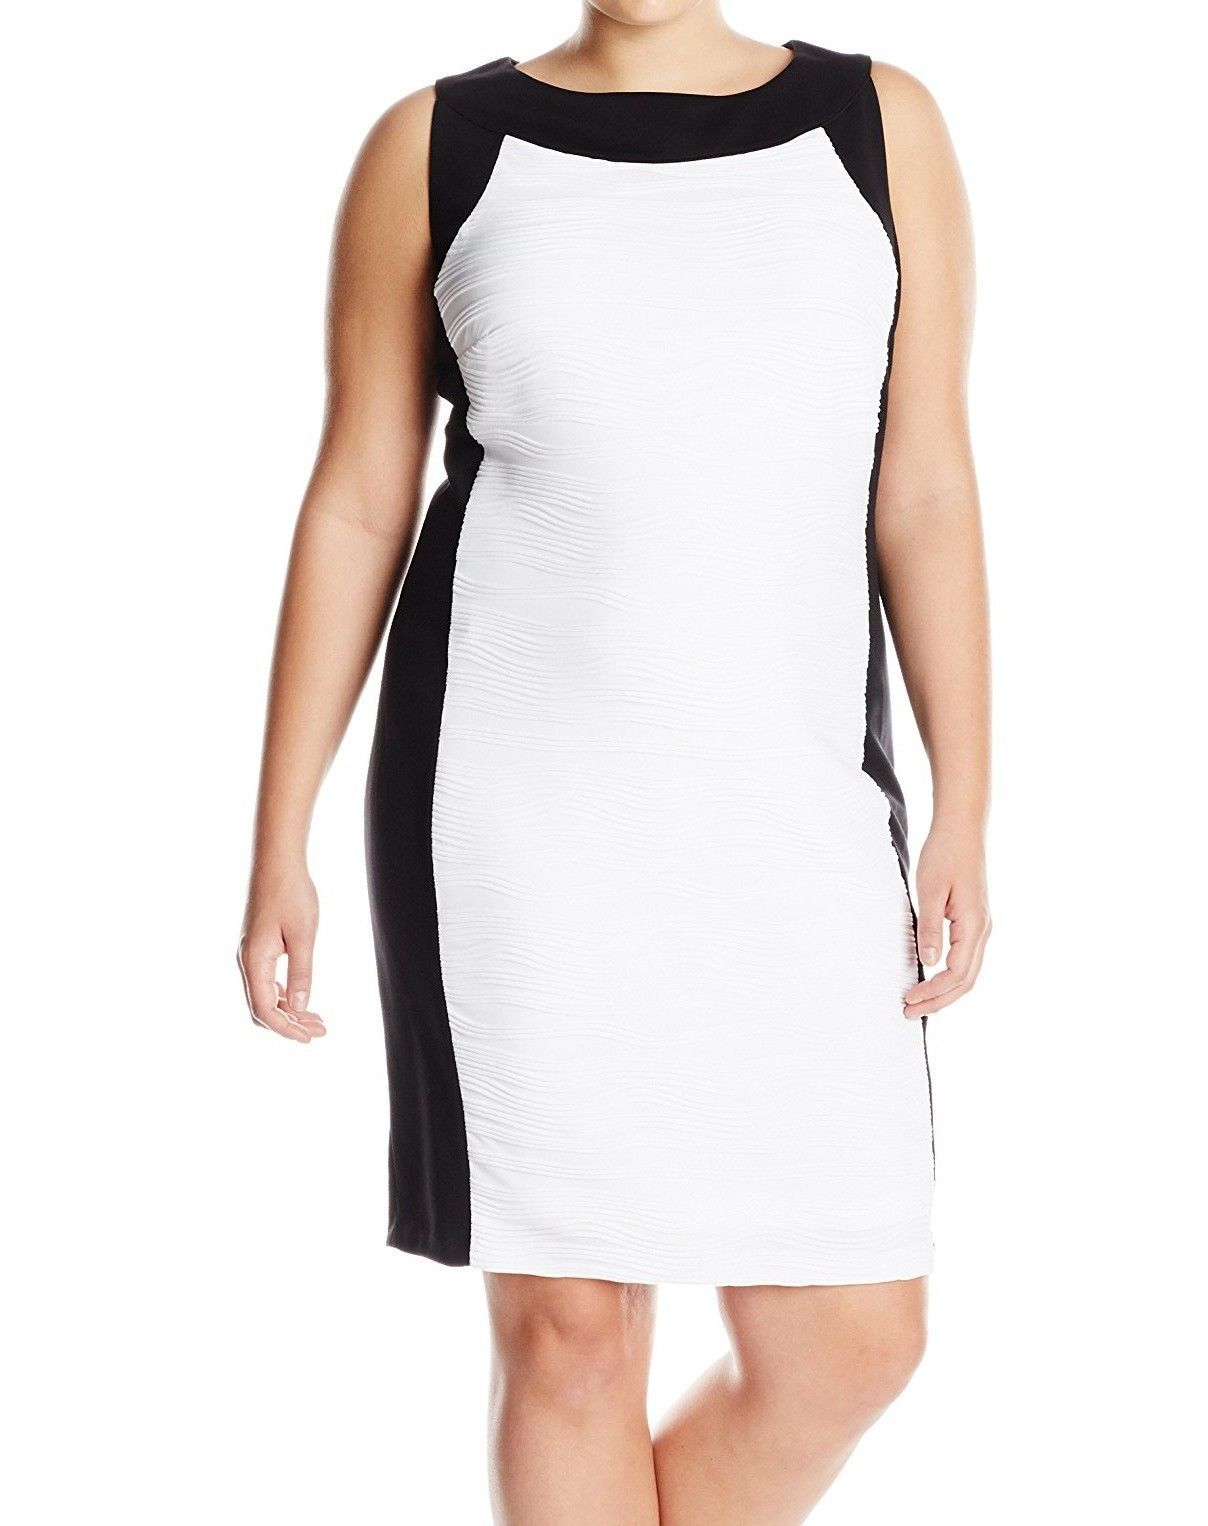 Awesome amazing calvin klein new white colorblocked womenus size w